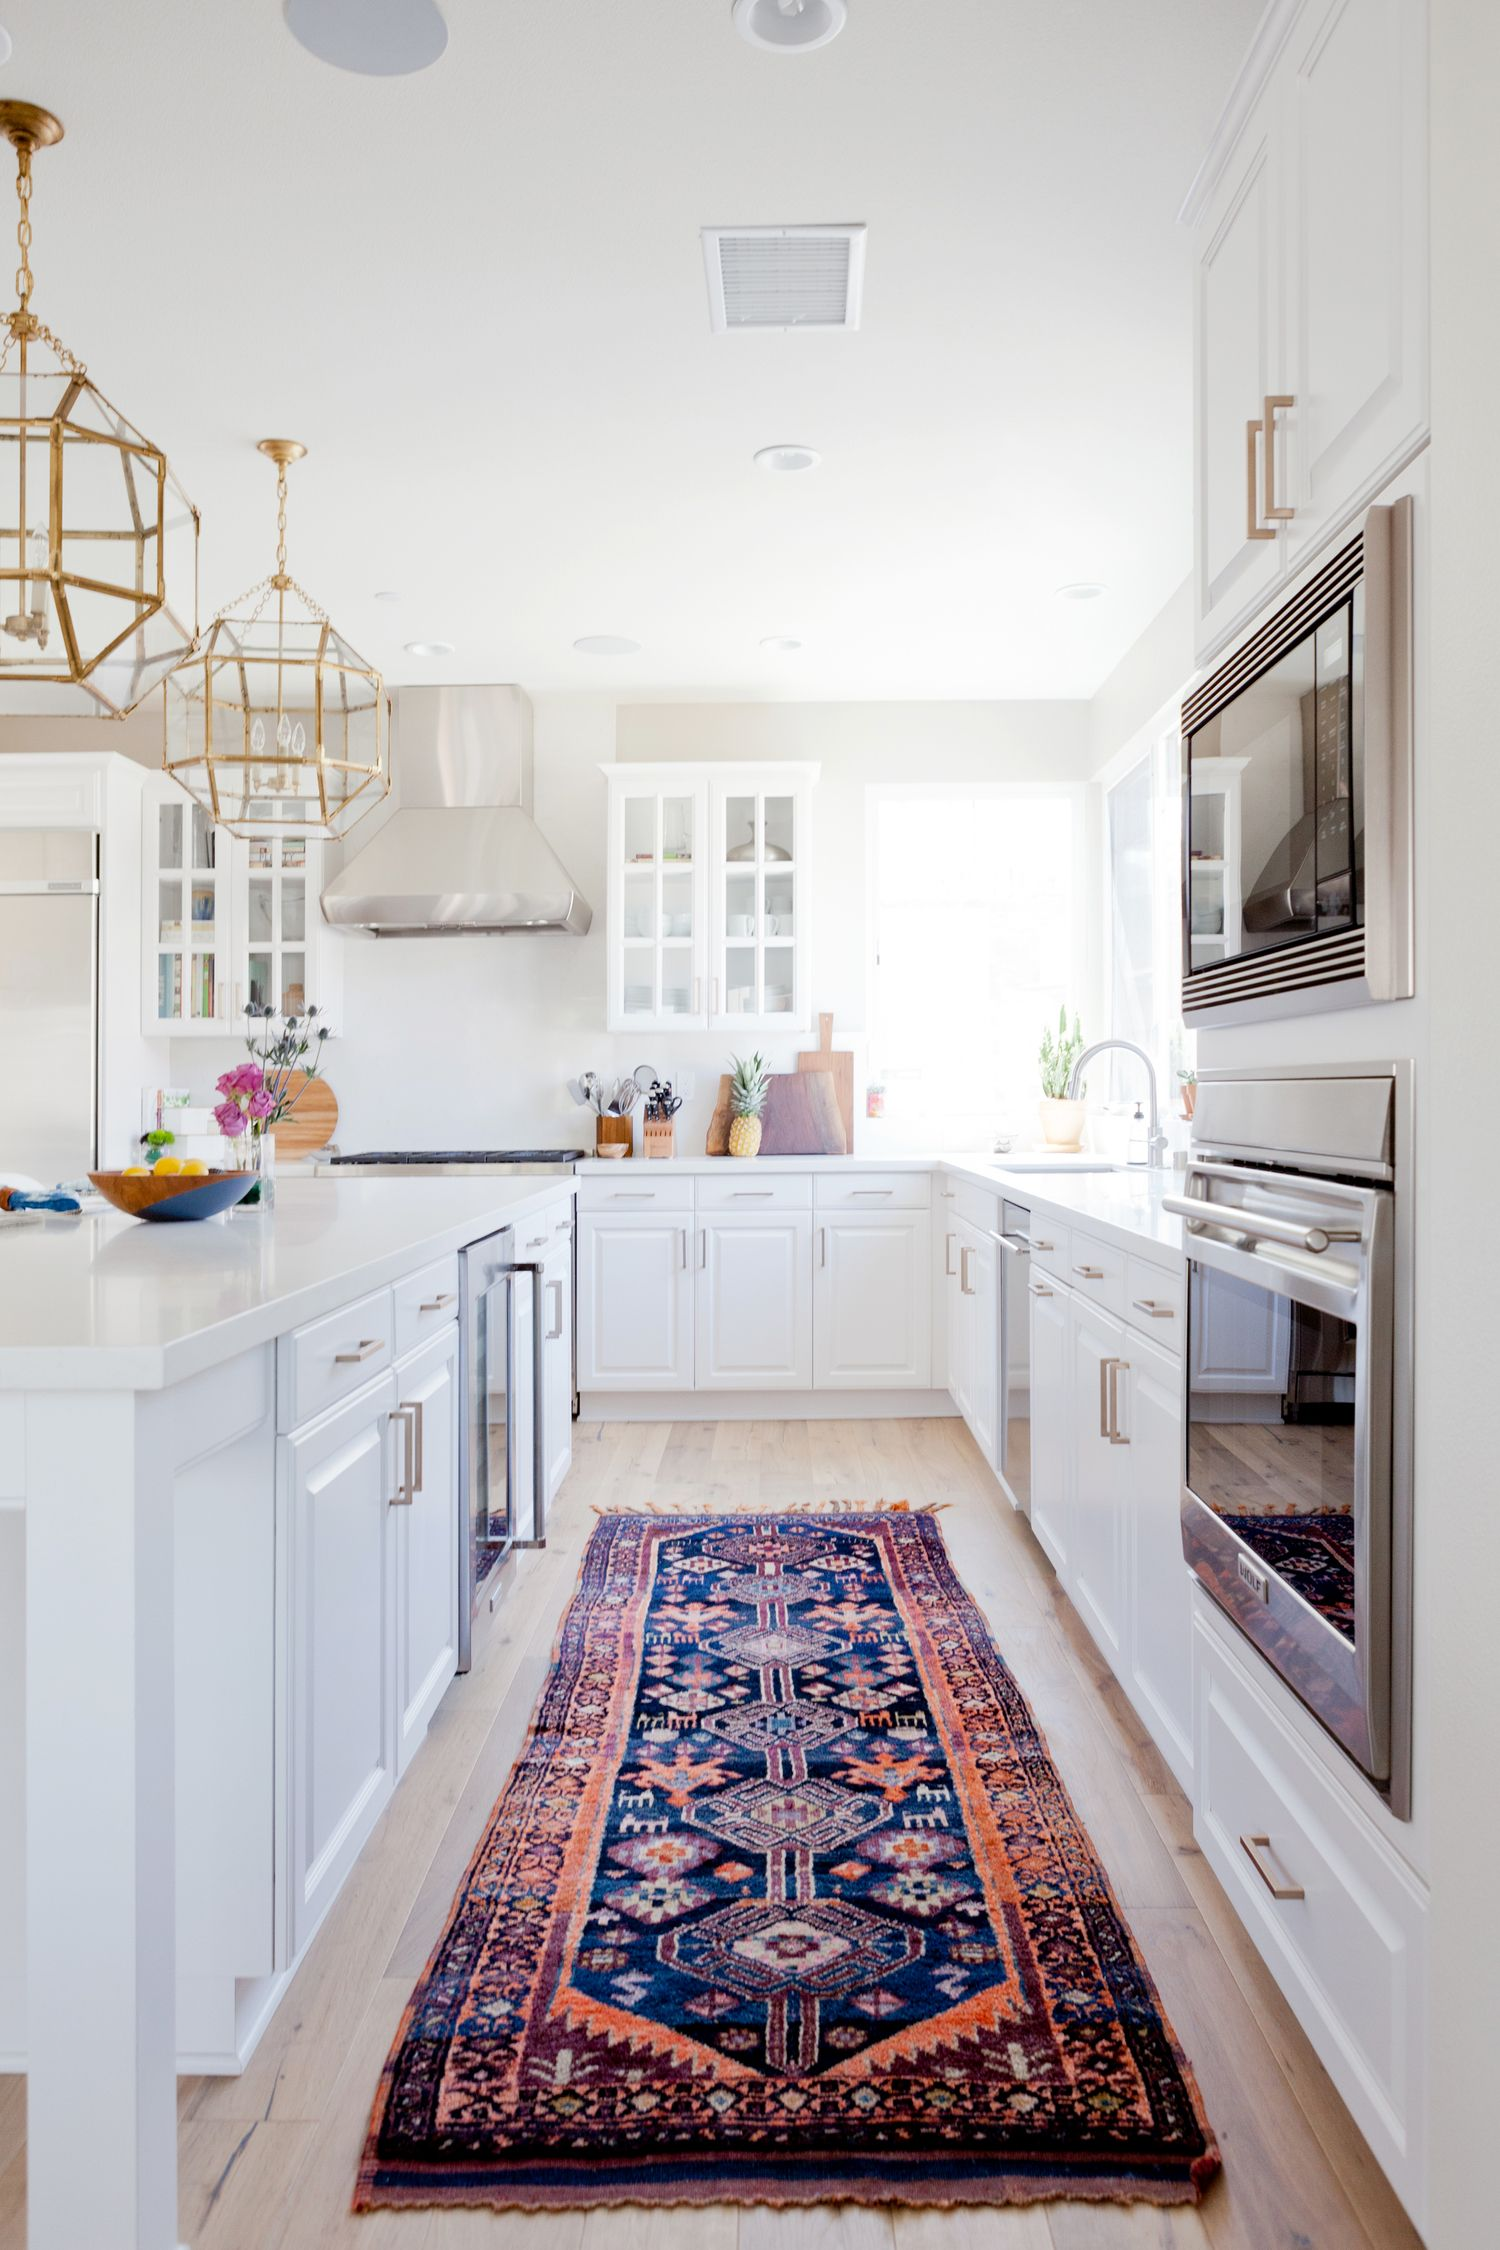 Design Crush Rugs In The Kitchen The Golden Girl Sweet Home Home Kitchen Inspirations